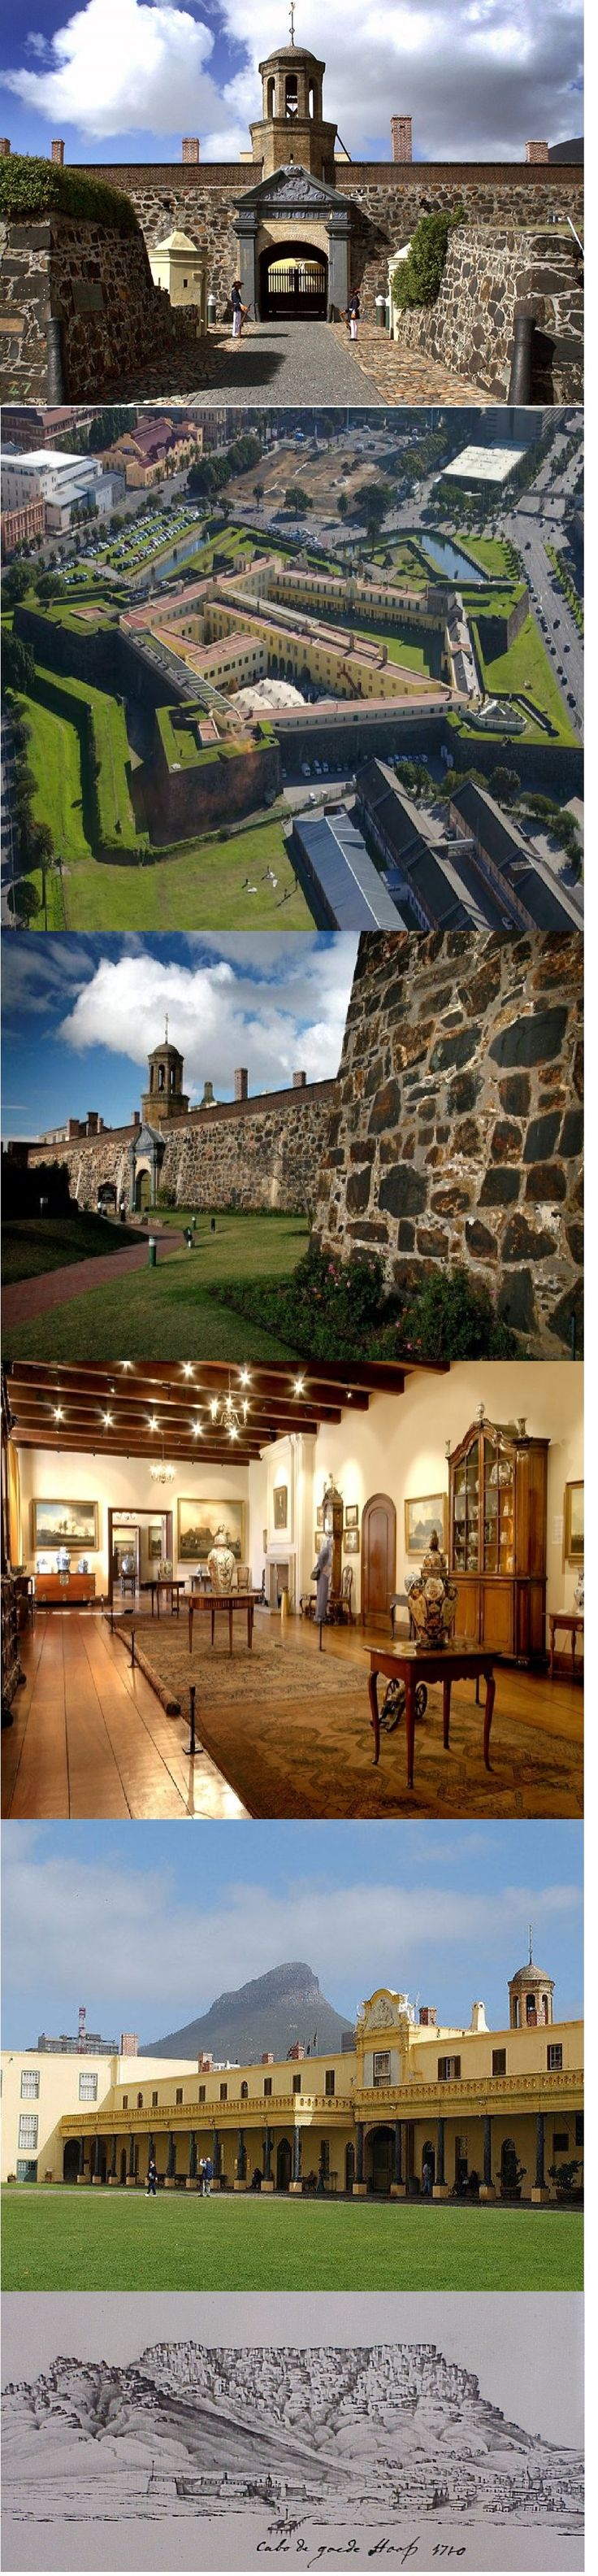 Built between 1666 and 1679 by the Dutch East India Company (VOC) as a maritime replenishment station, the Castle of Good Hope is the oldest surviving colonial building in South Africa. From 1678 it was the centre of civilian, administrative and military life at the Cape, until the settlement grew and some functions and activities moved away from the Castle. Today the Castle is the seat of the military in the Cape, and houses the Castle Military Museum and Iziko Museums of Cape Town